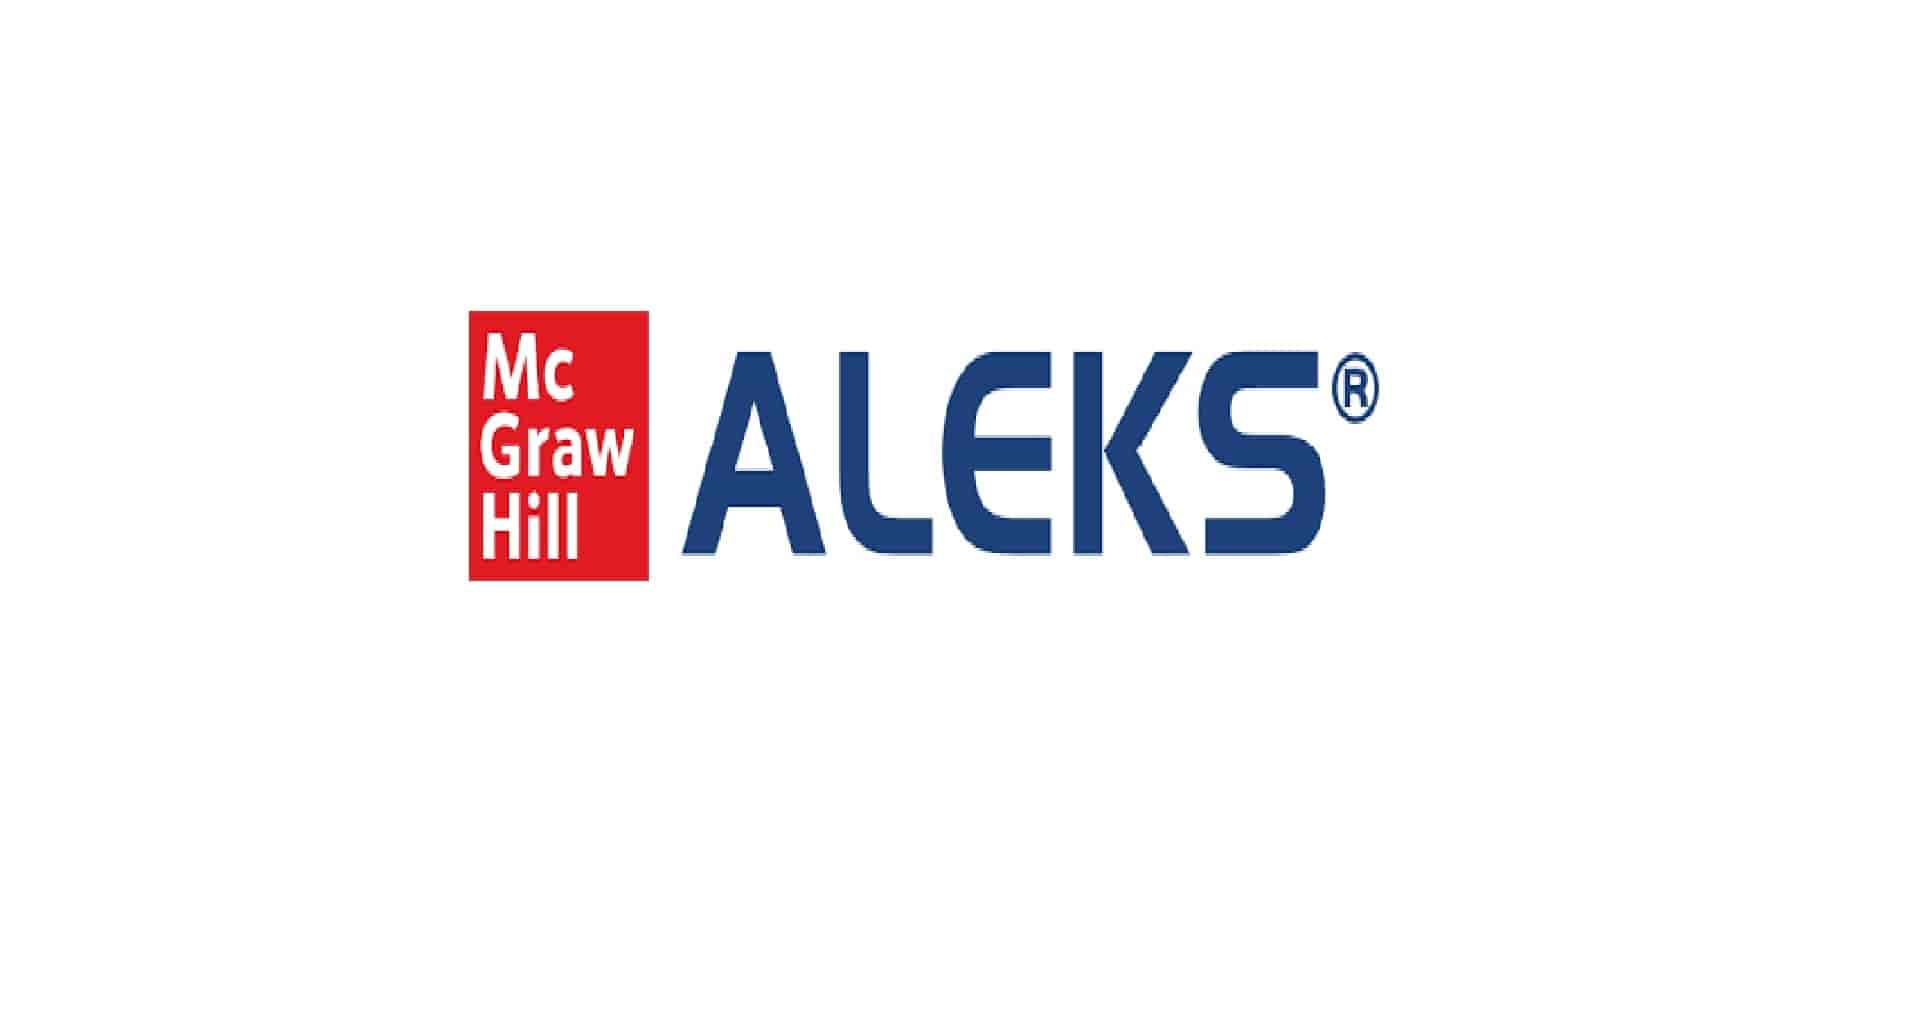 Far Eastern University (FEU) Selects McGraw Hill ALEKS® Adaptive Learning Software for Math and Business Courses for 2020-2021 Academic Year